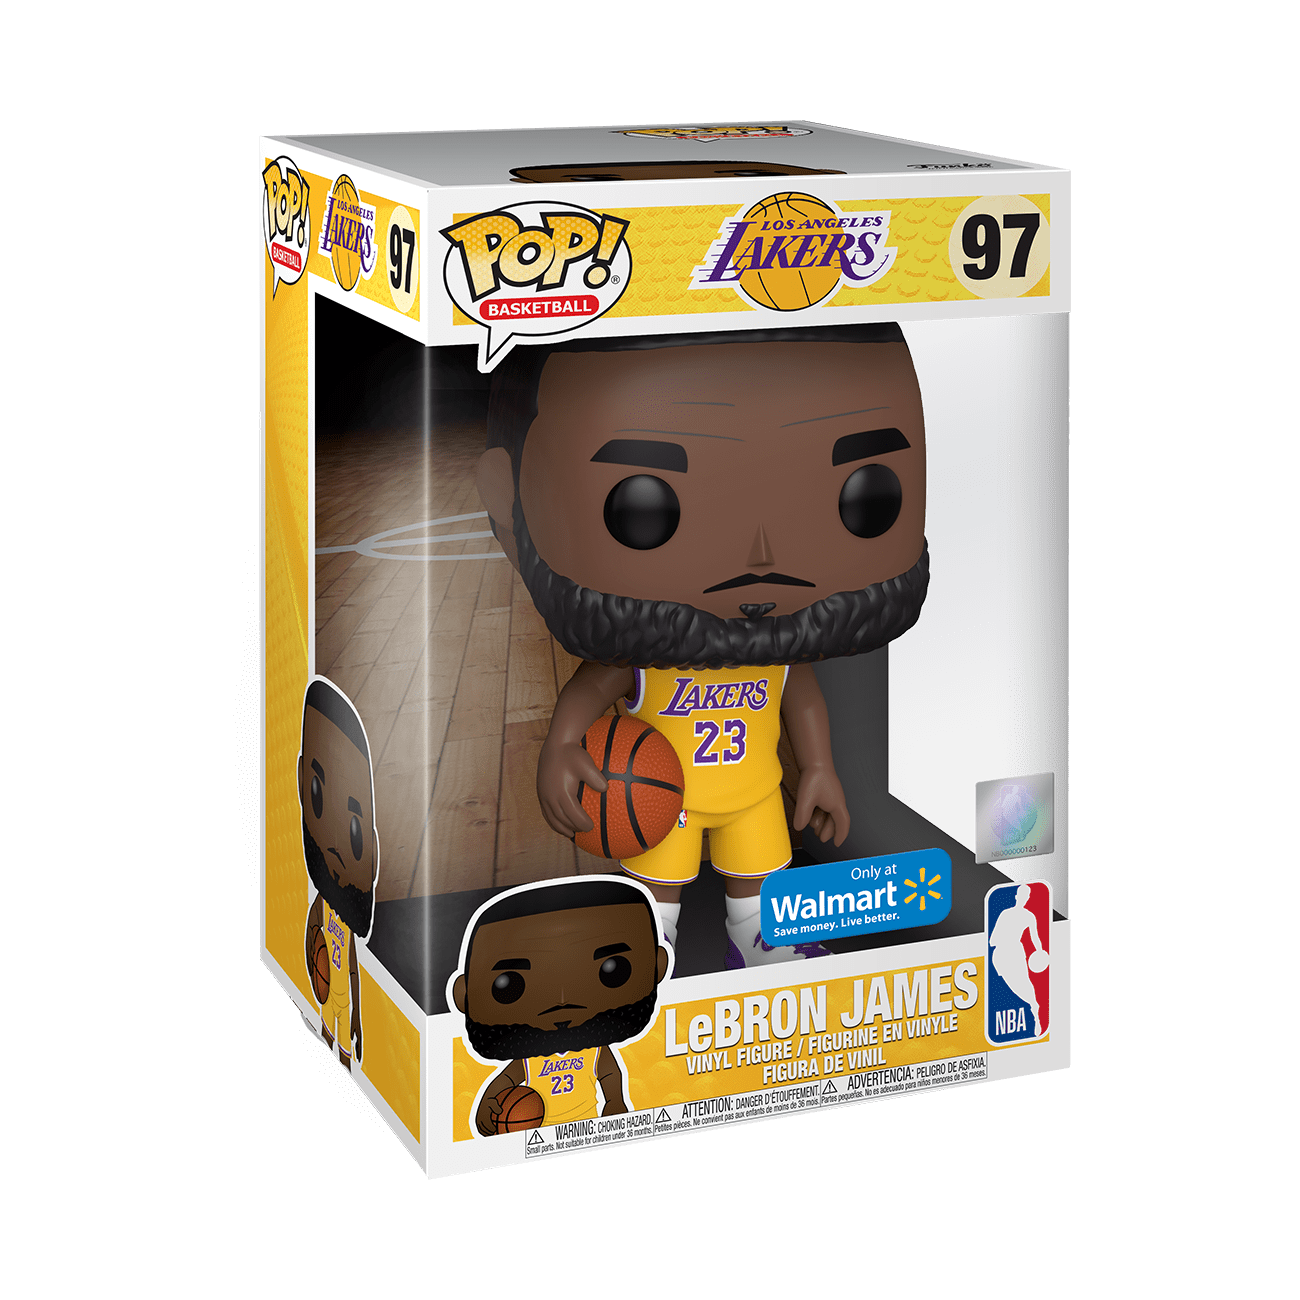 Funko Pop Nba Lakers 10 Lebron James Yellow Jersey Walmart Exclusive Walmart Com Walmart Com